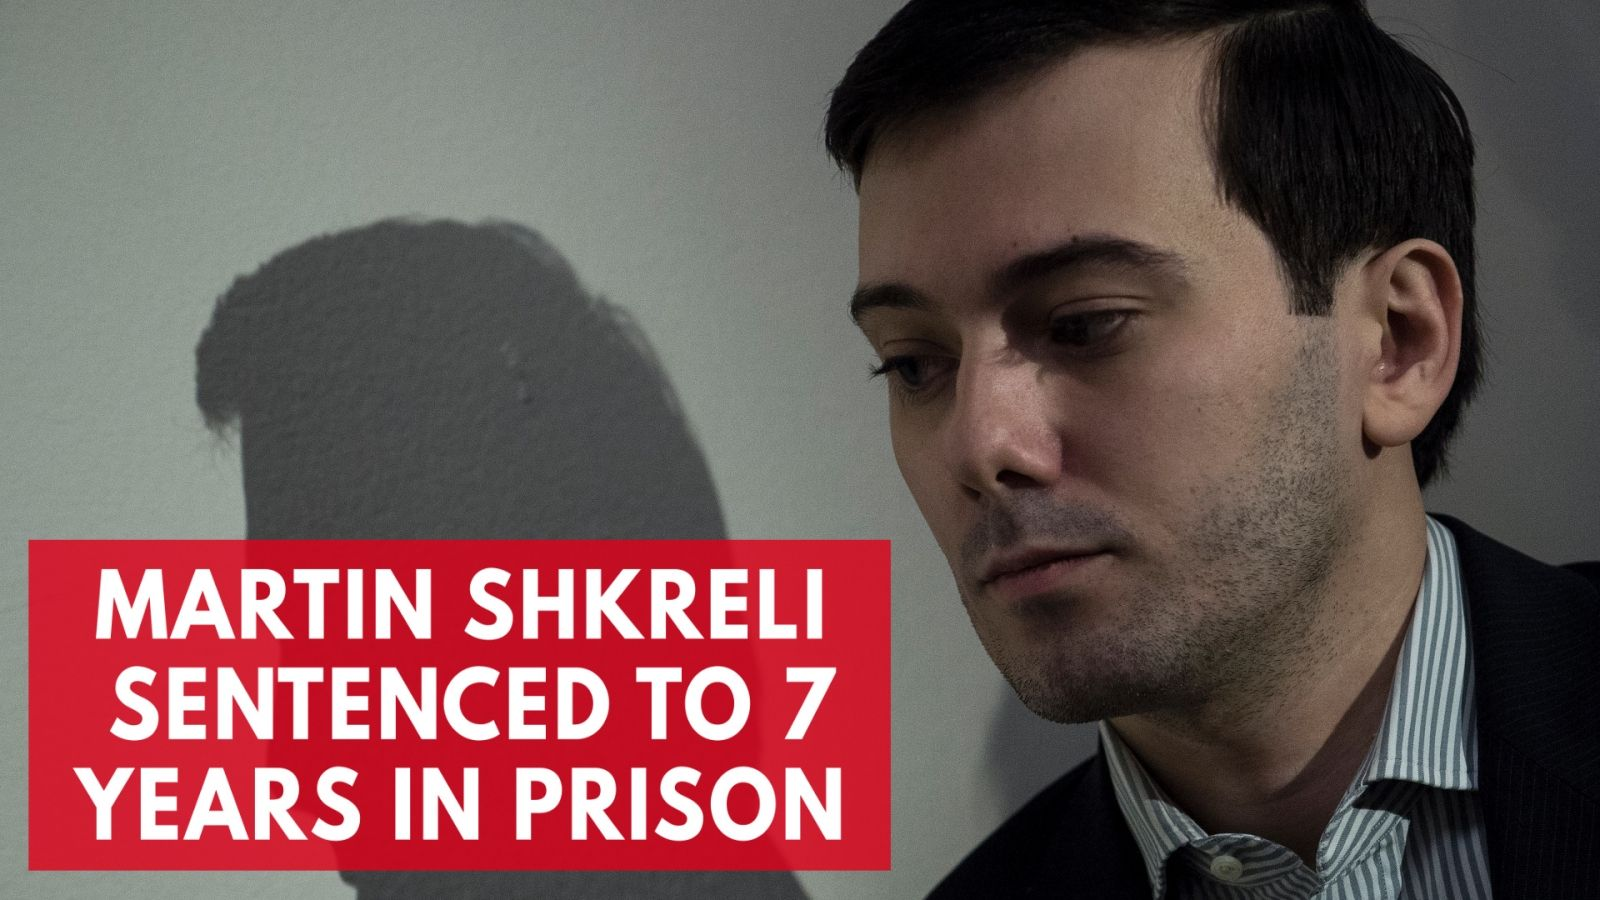 pharma-bro-martin-shkreli-sentenced-to-7-years-in-prison